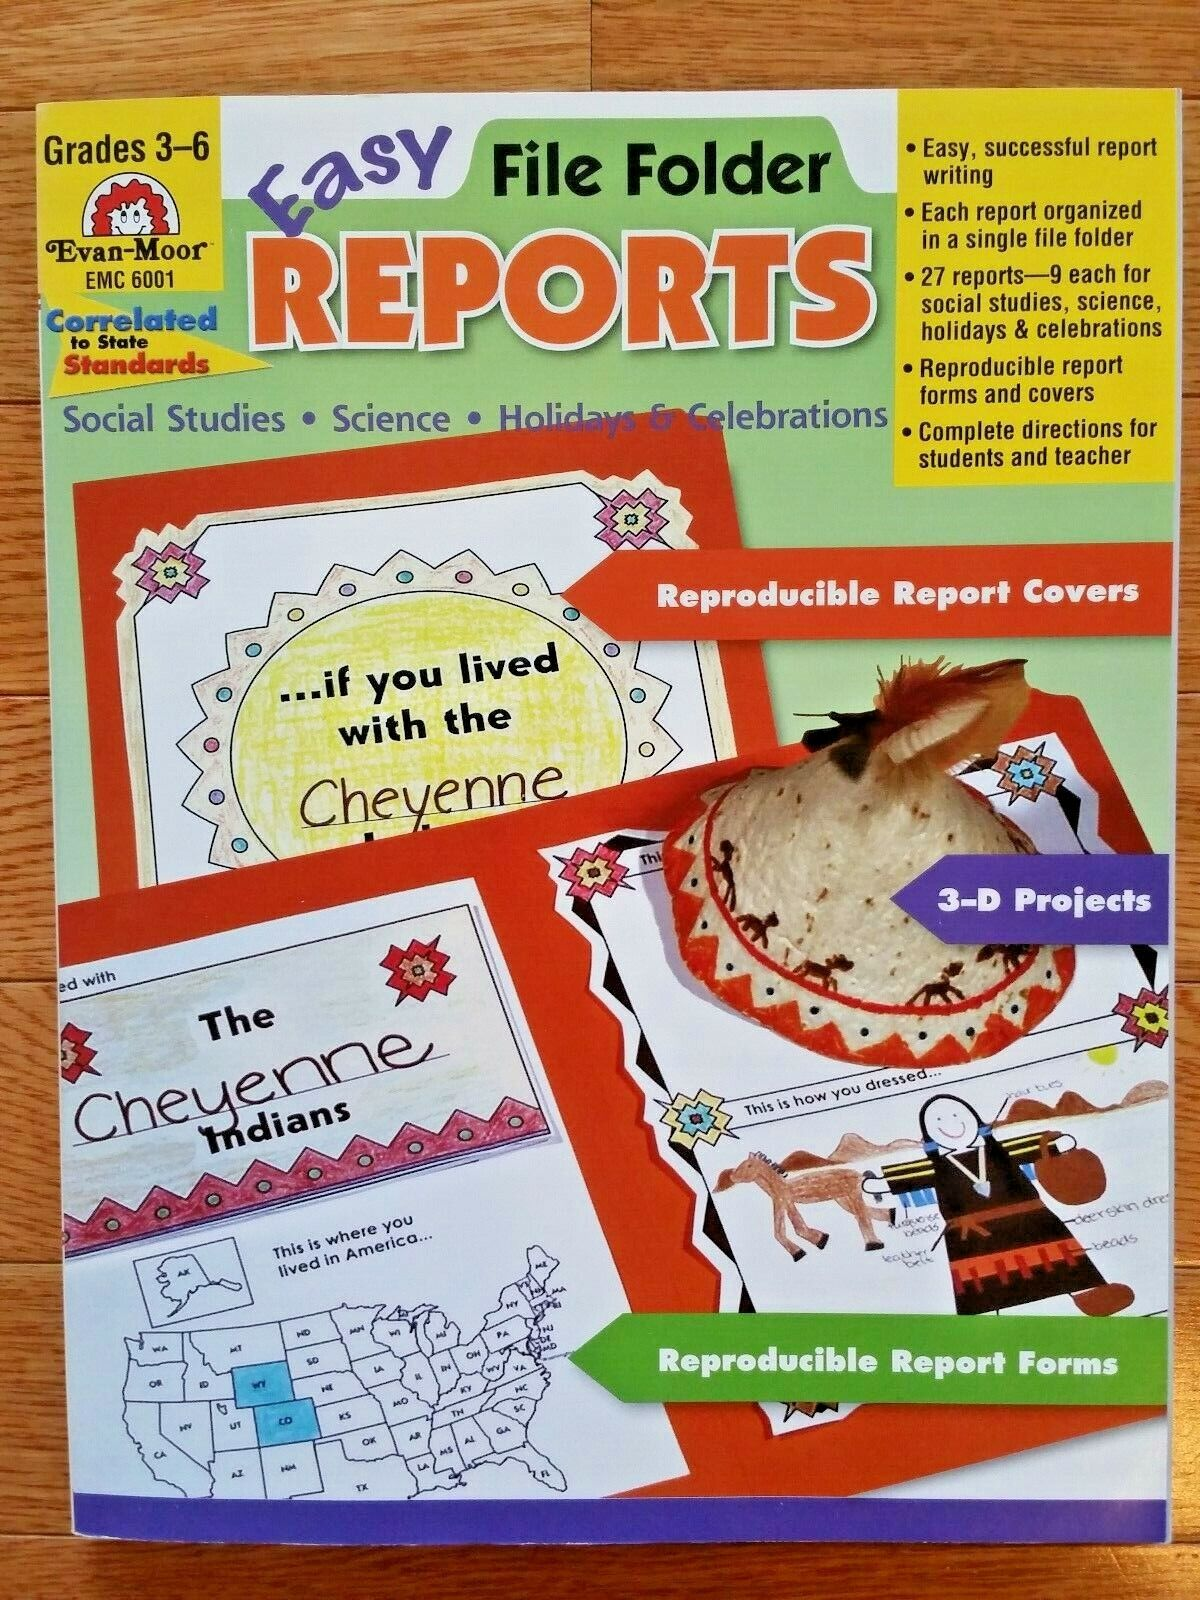 Easy File Folder Reports Grades 3-6 By Evan-Moor 2004, Paperback  - $5.00